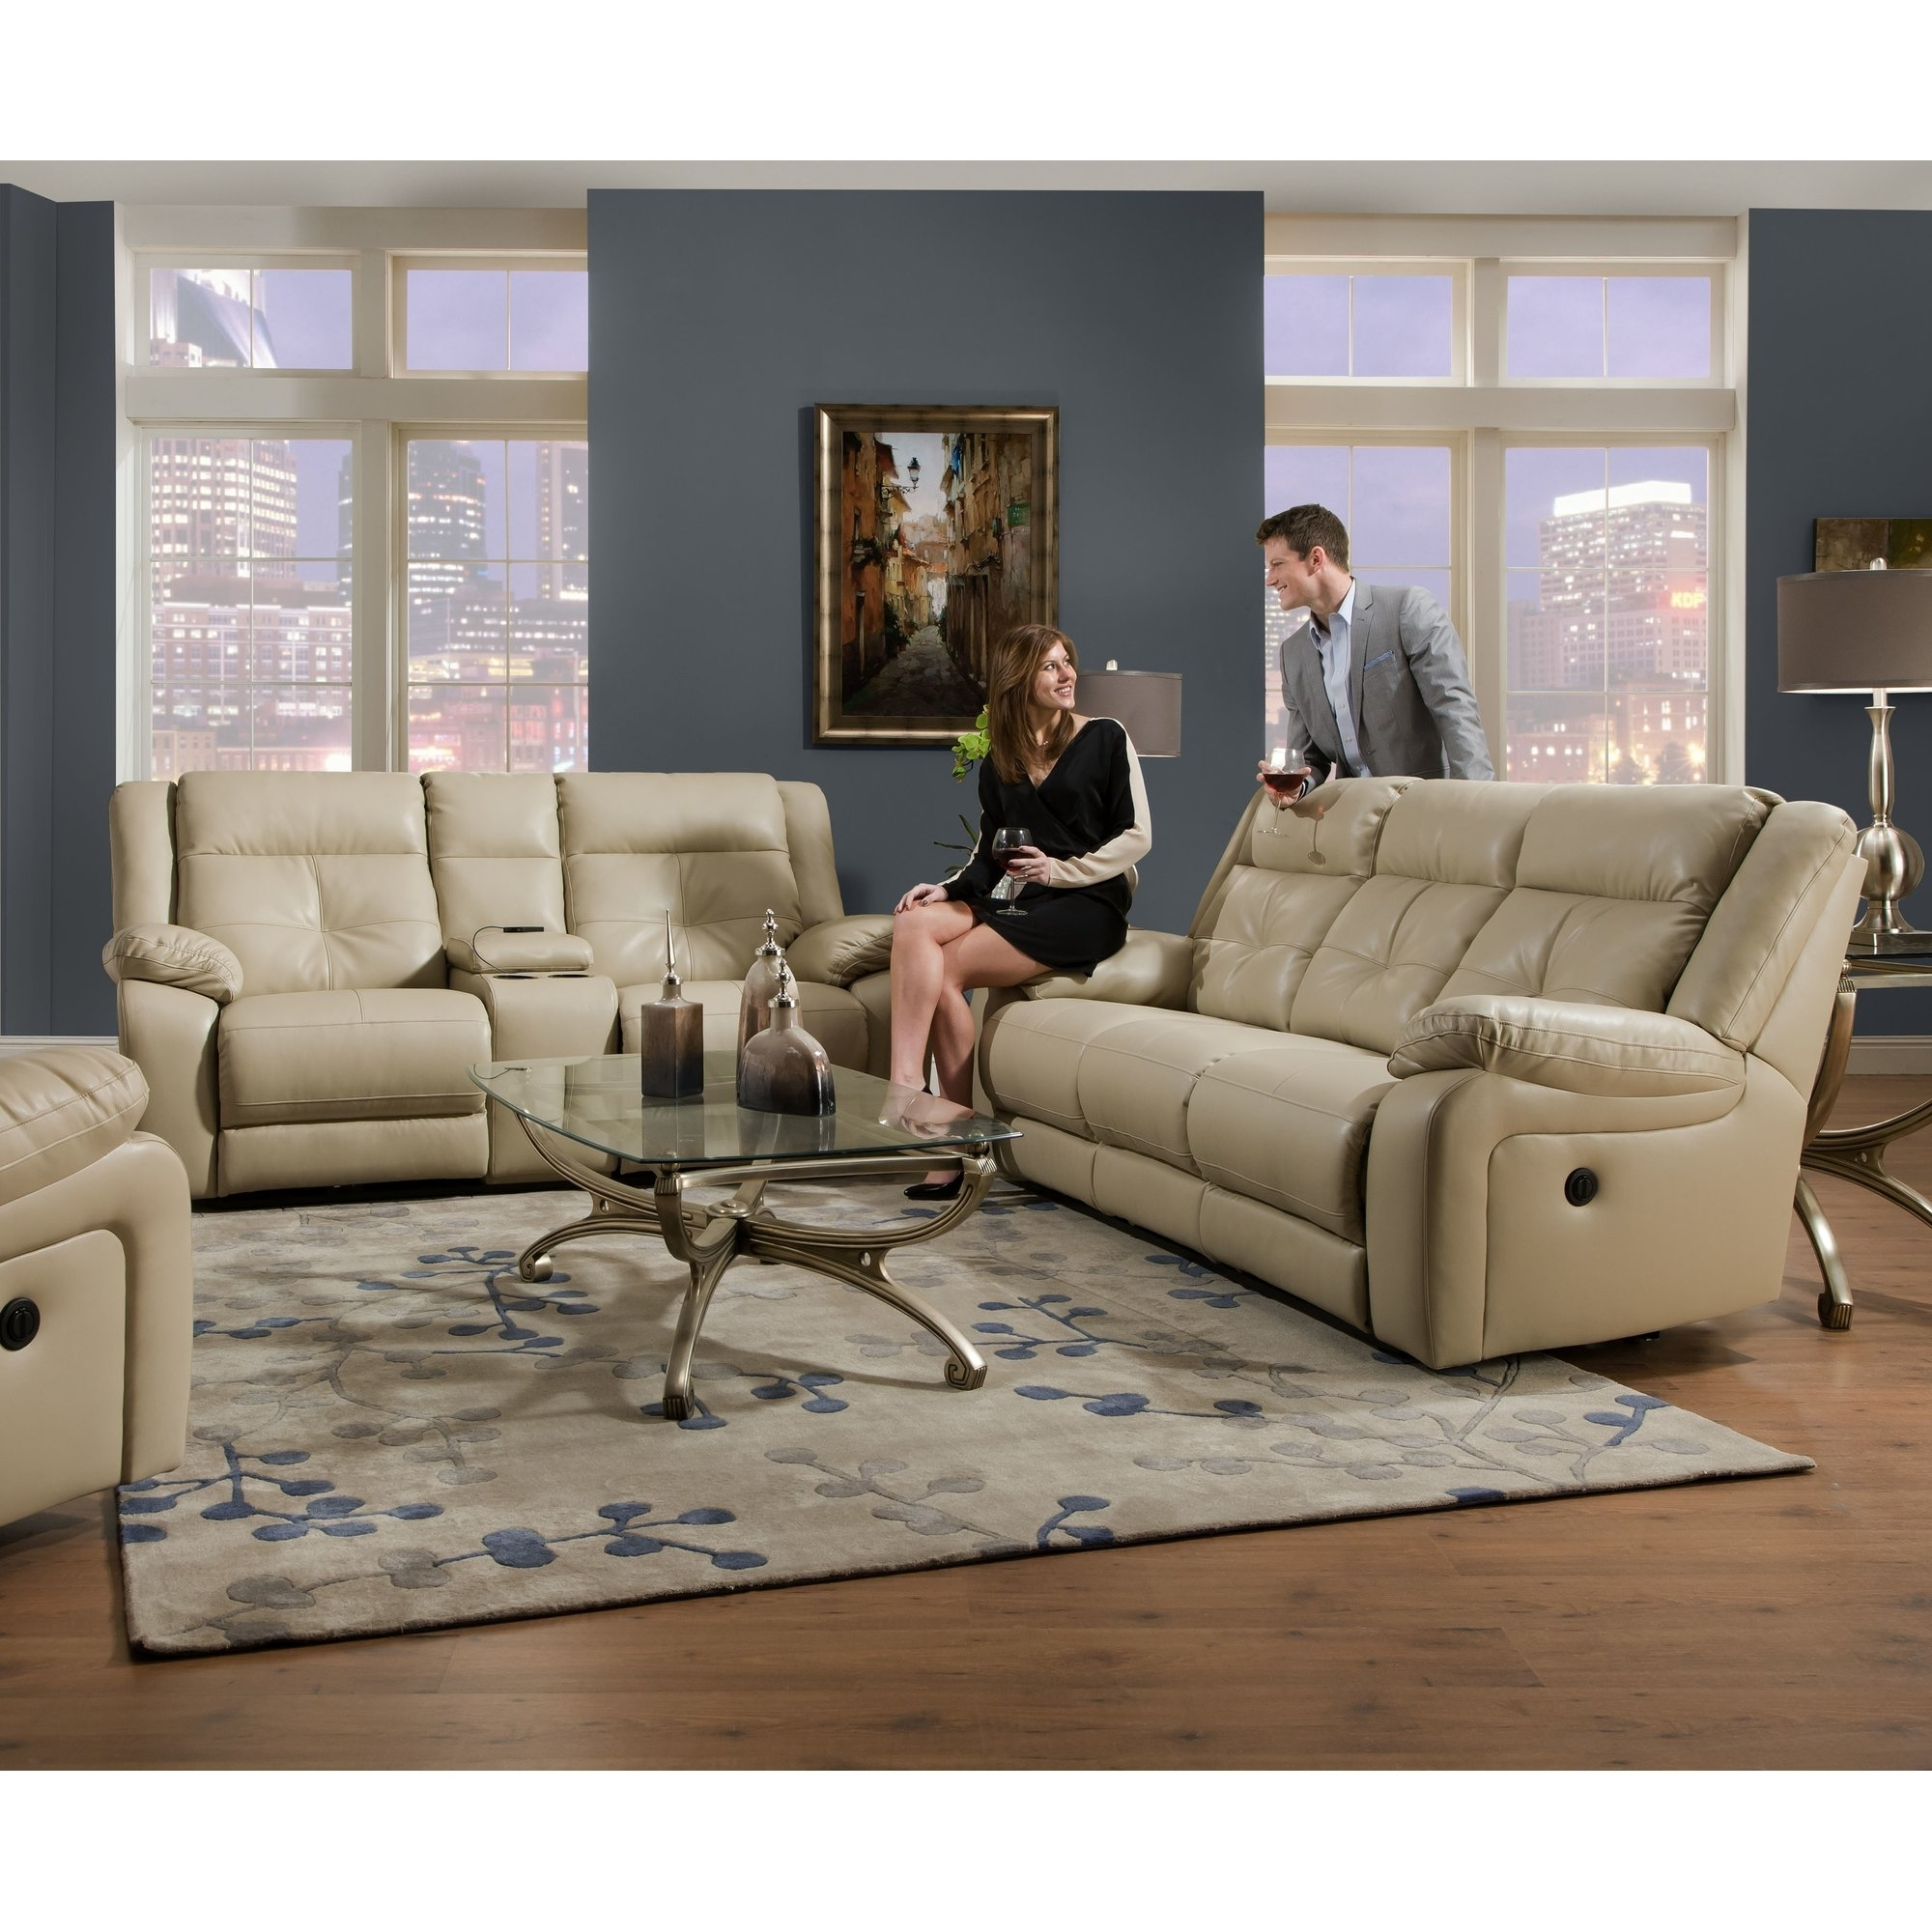 Simmons Sectional Sofa Kmart • Sectional Sofa In Kmart Sectional Sofas (View 7 of 10)